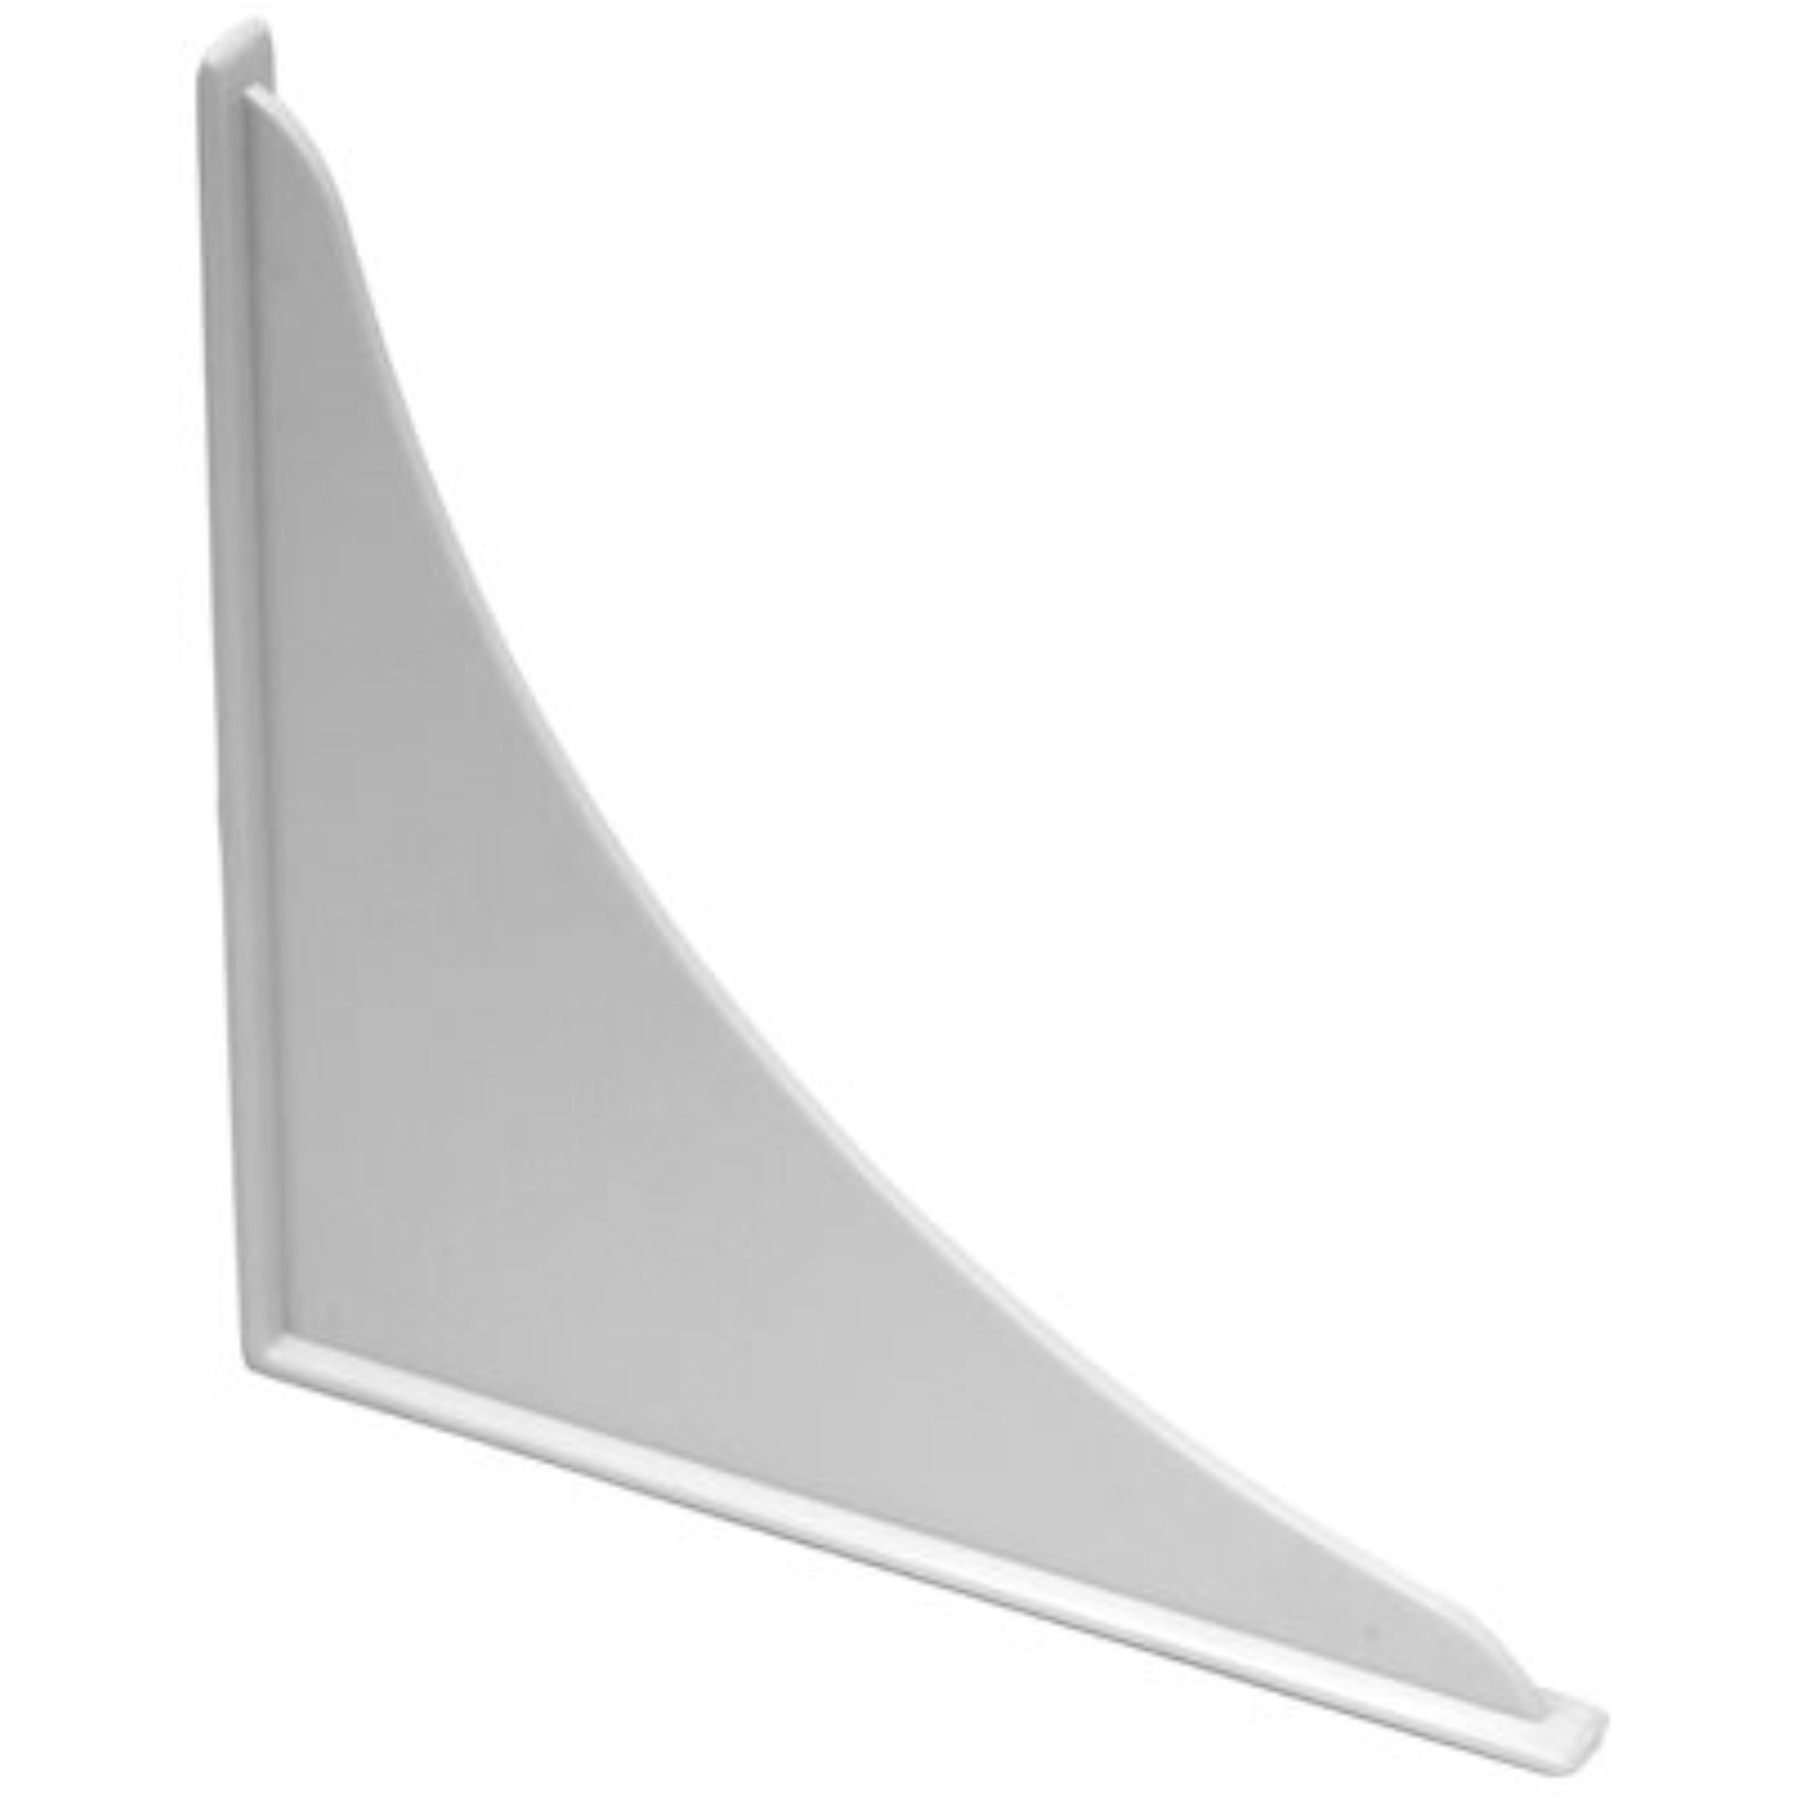 PROPLUS� POLYSTYRENE BATHTUB GUARD, 7 IN. X 7 IN., WHITE